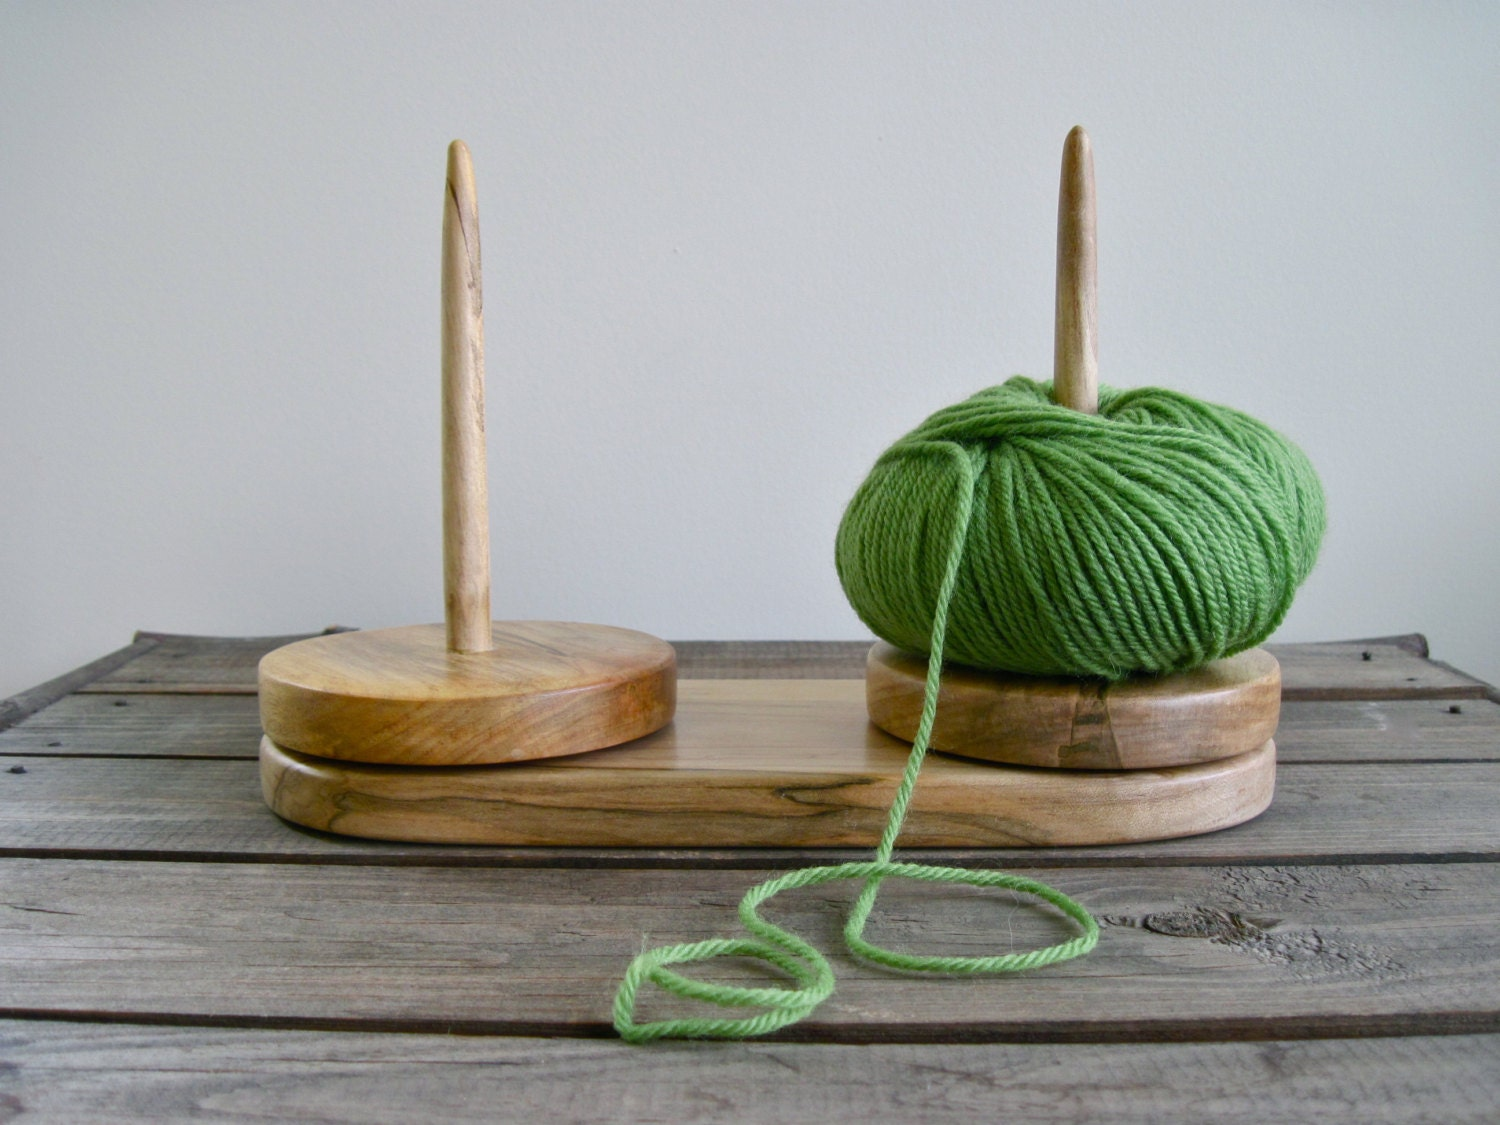 Knitting Yarn Holder : Yarn caddy double holder for knitting and crochet